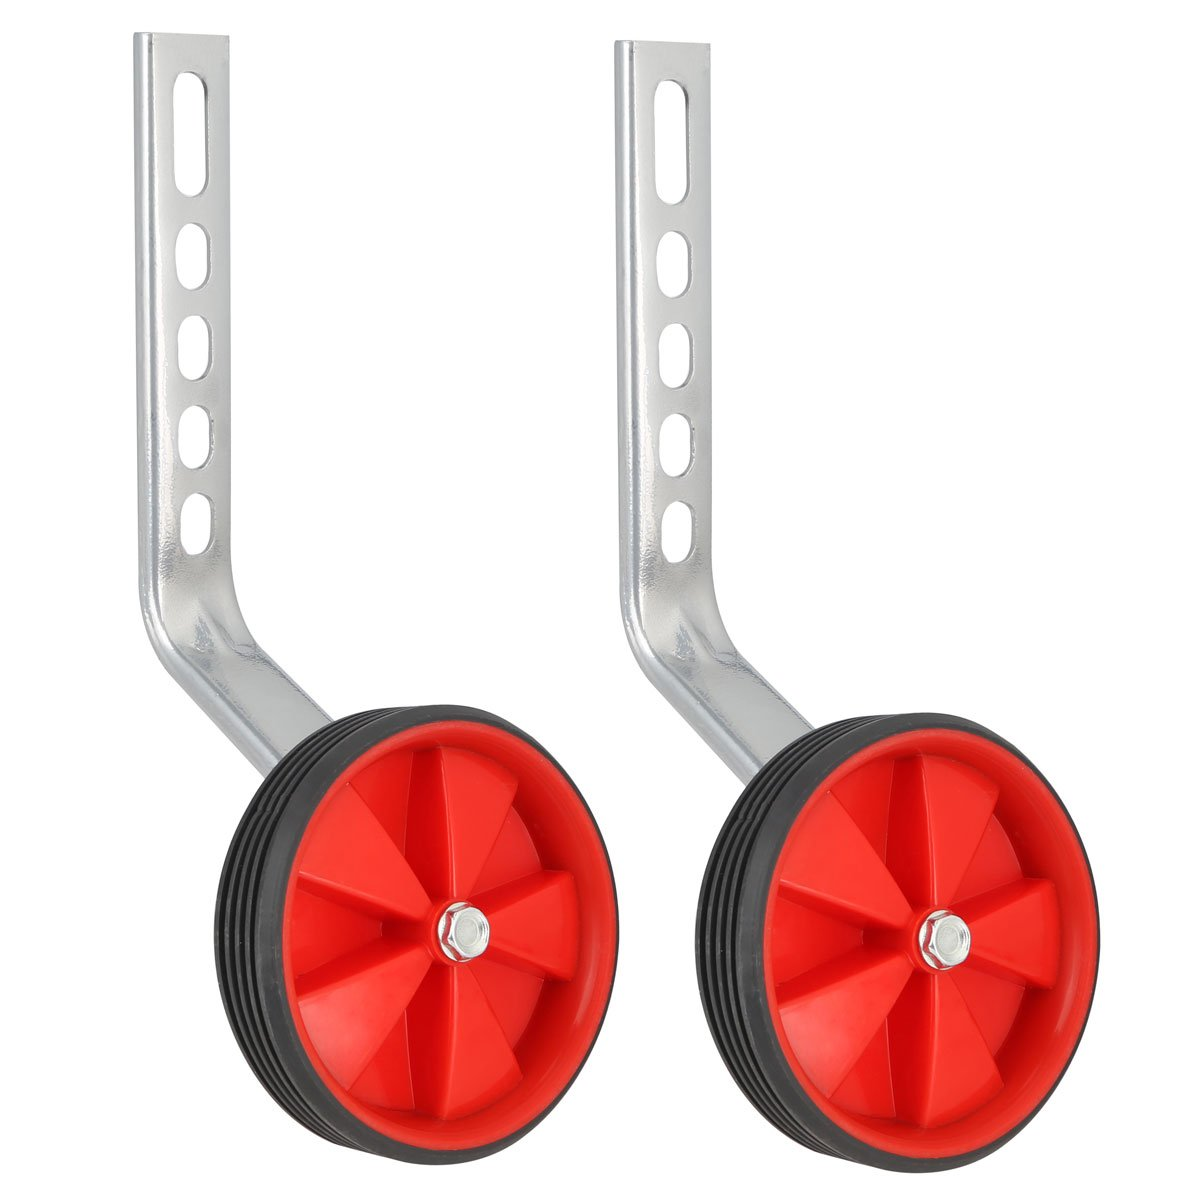 Herbalcandybox 1 Pair 4.33 Inch Kids Bicycle Training Replacement Wheels with Mounting Bracket for 12-20 Inch Kids Bike, Red01